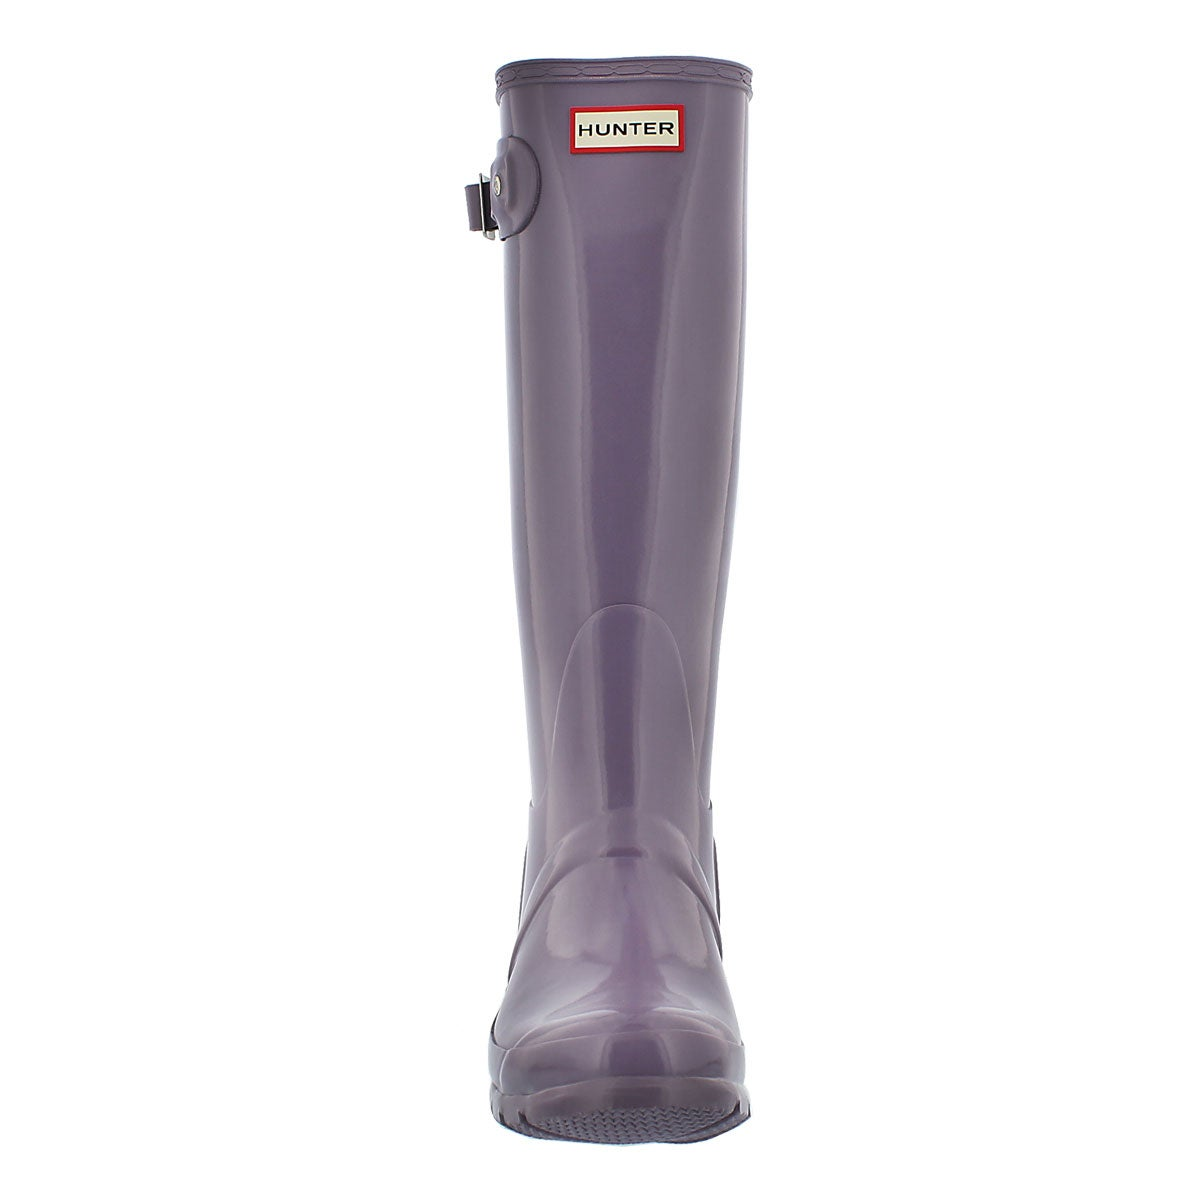 Lds Orig. Tall Gloss thundercloud boot